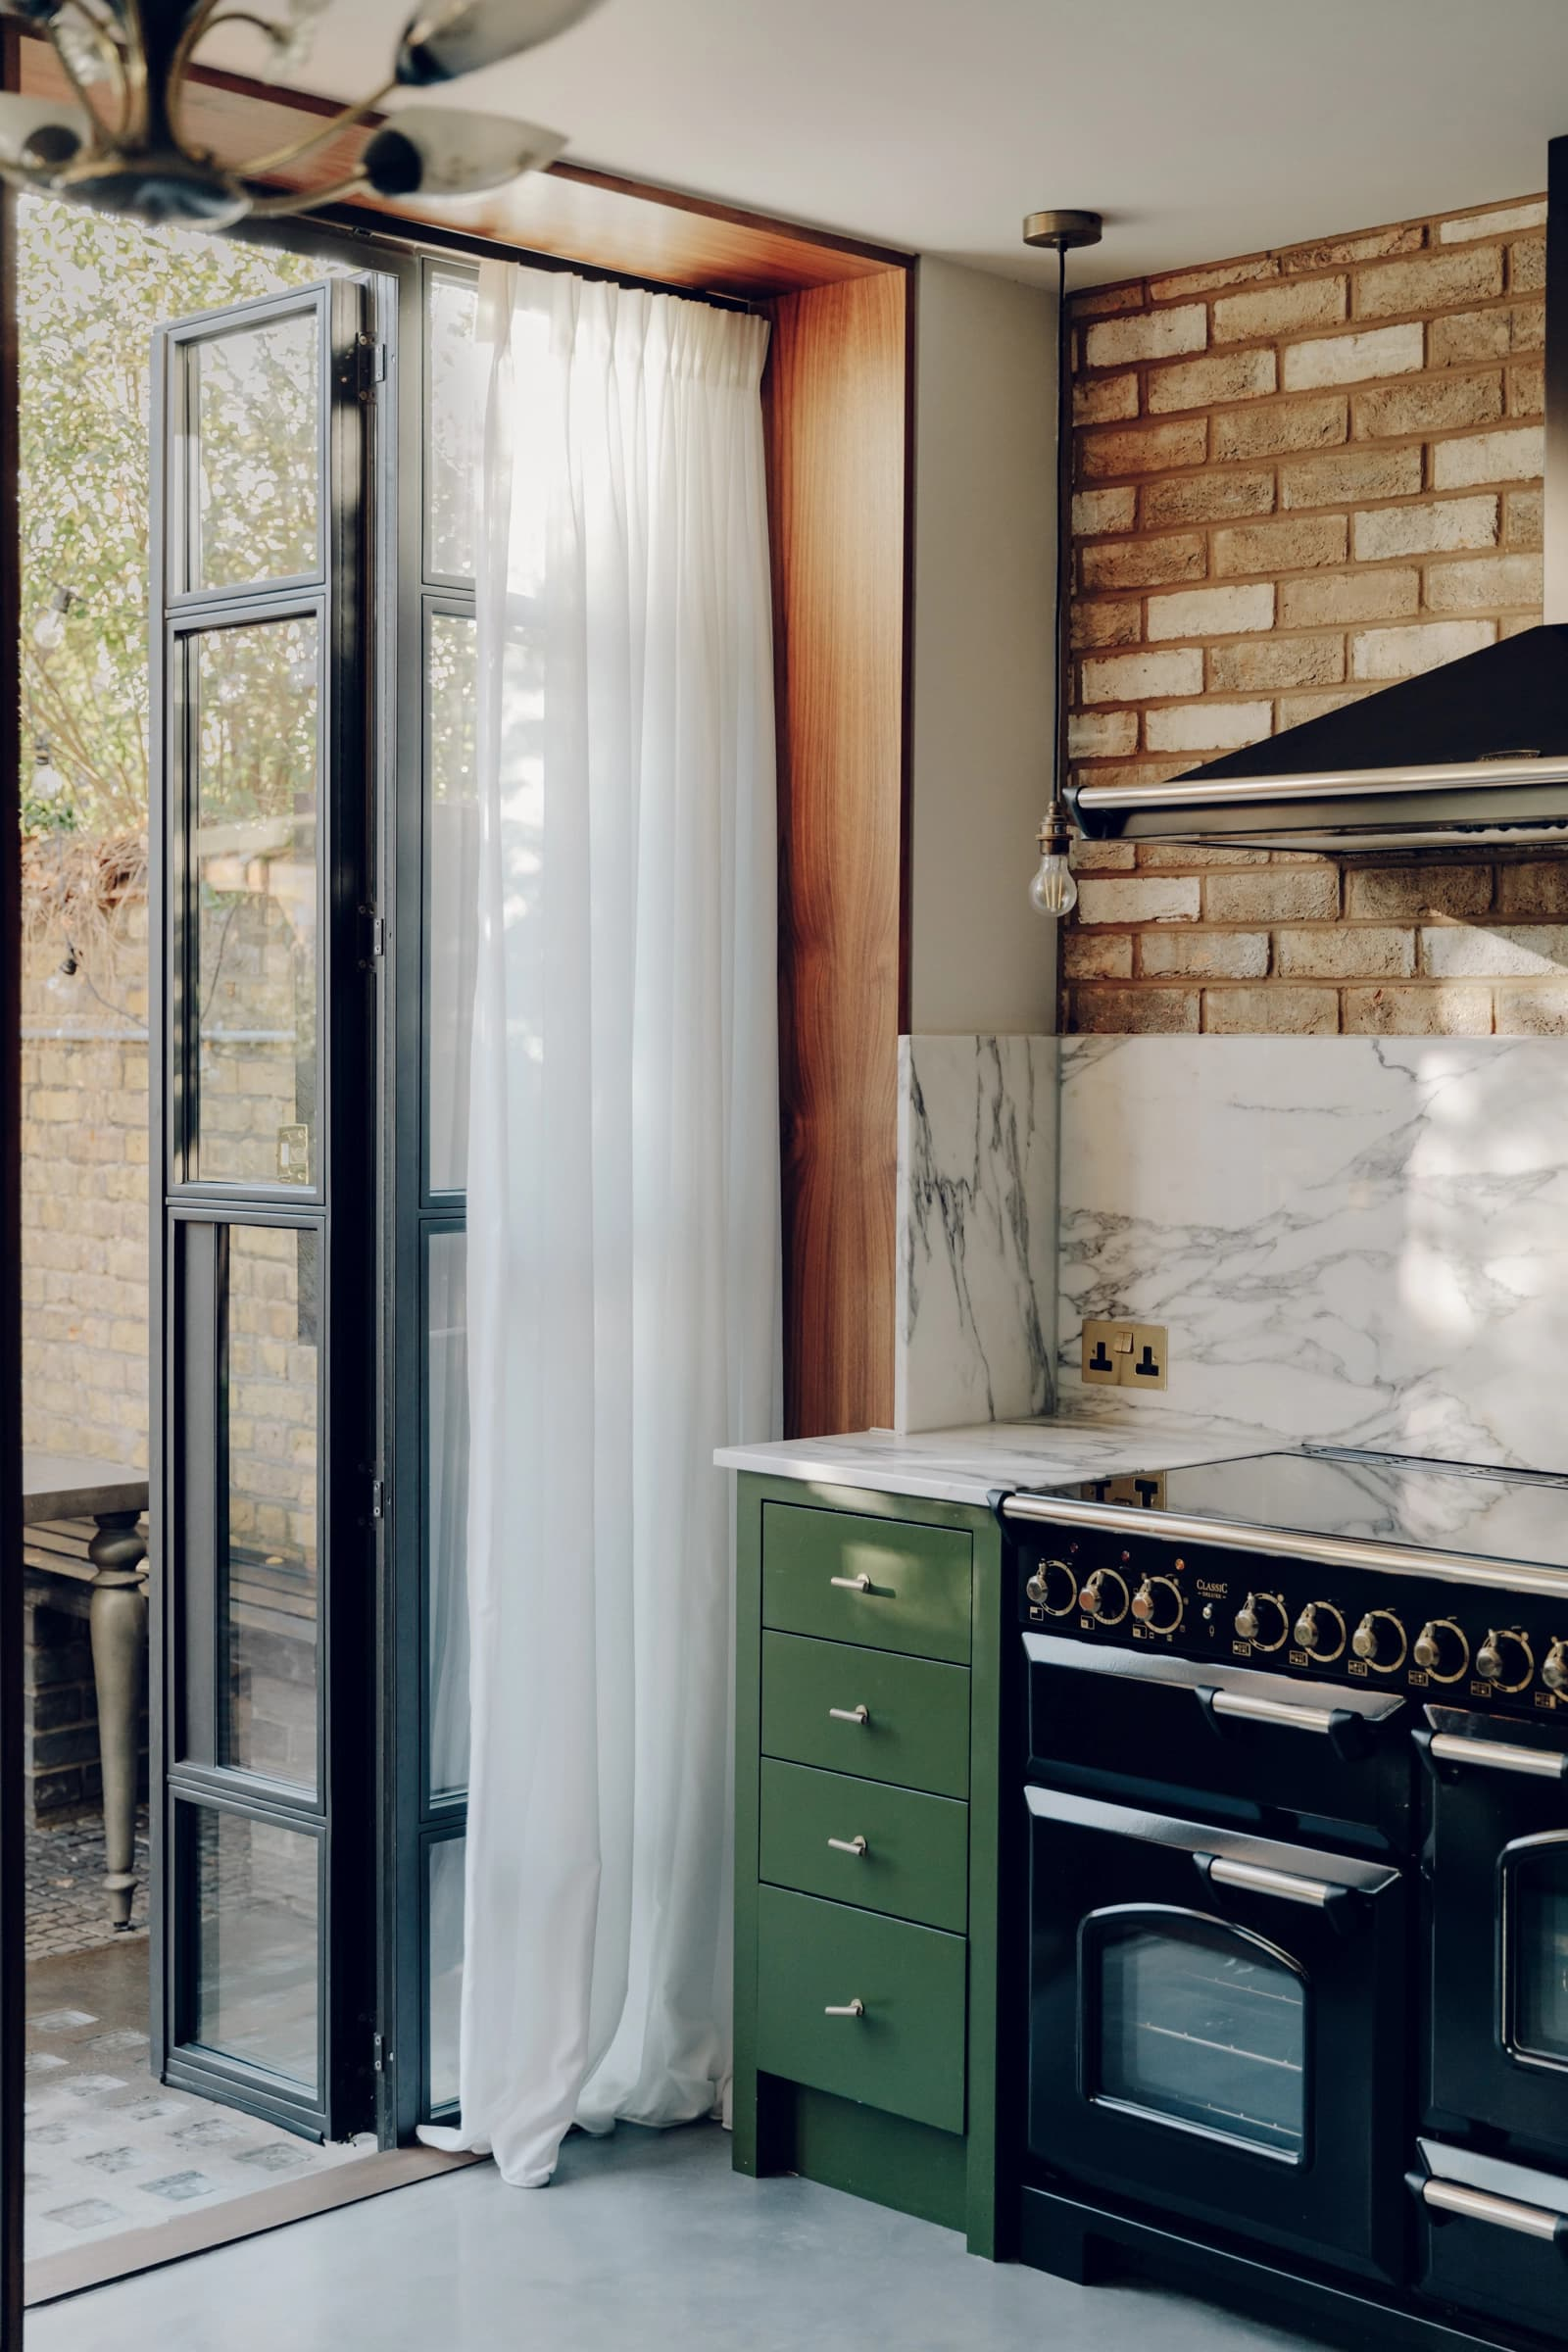 this is a contemporary and industrial kitchen with a green shade and wooden elements